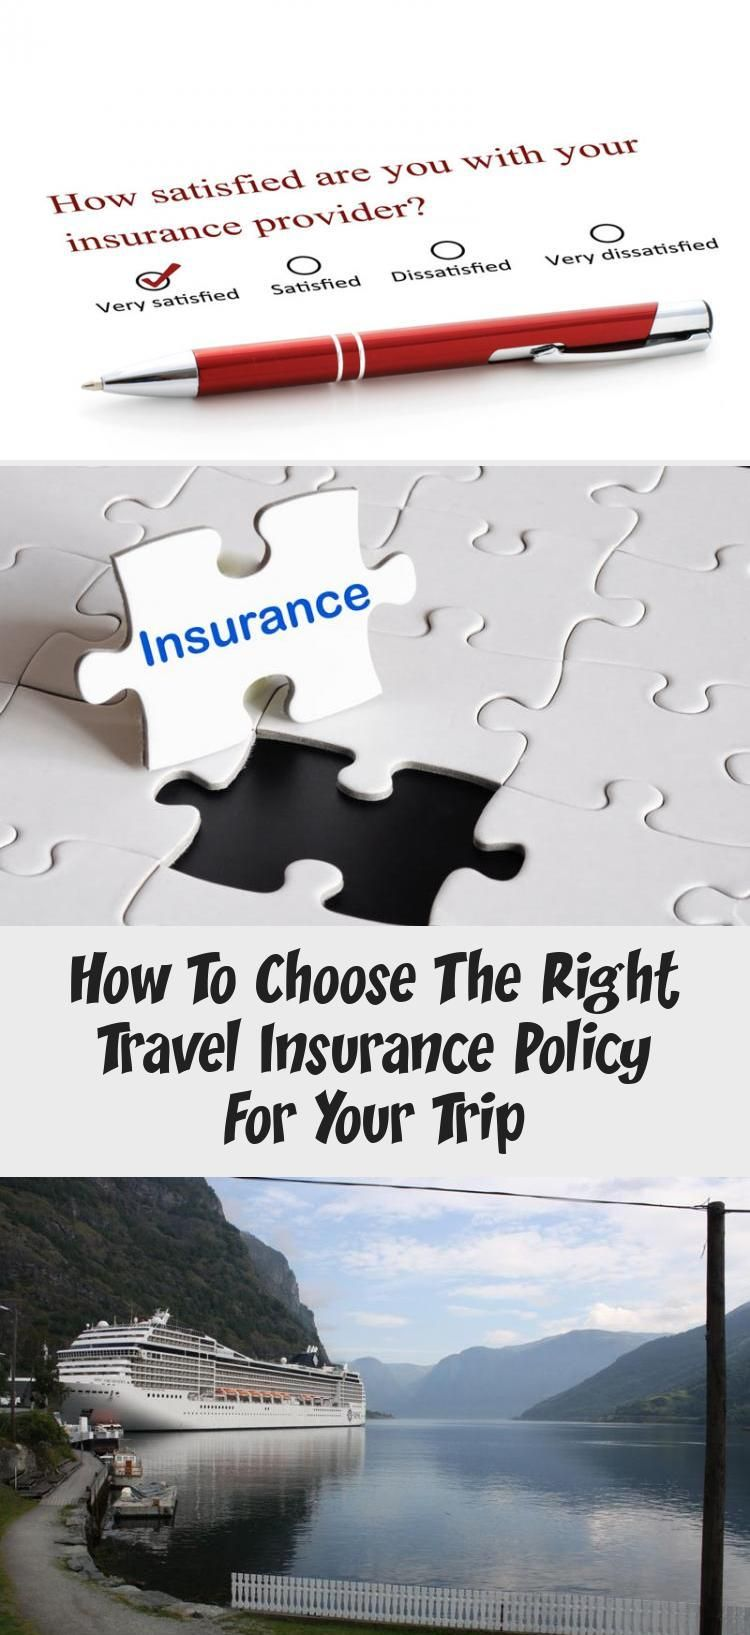 How To Choose The Right Travel Insurance Policy For Your Trip In